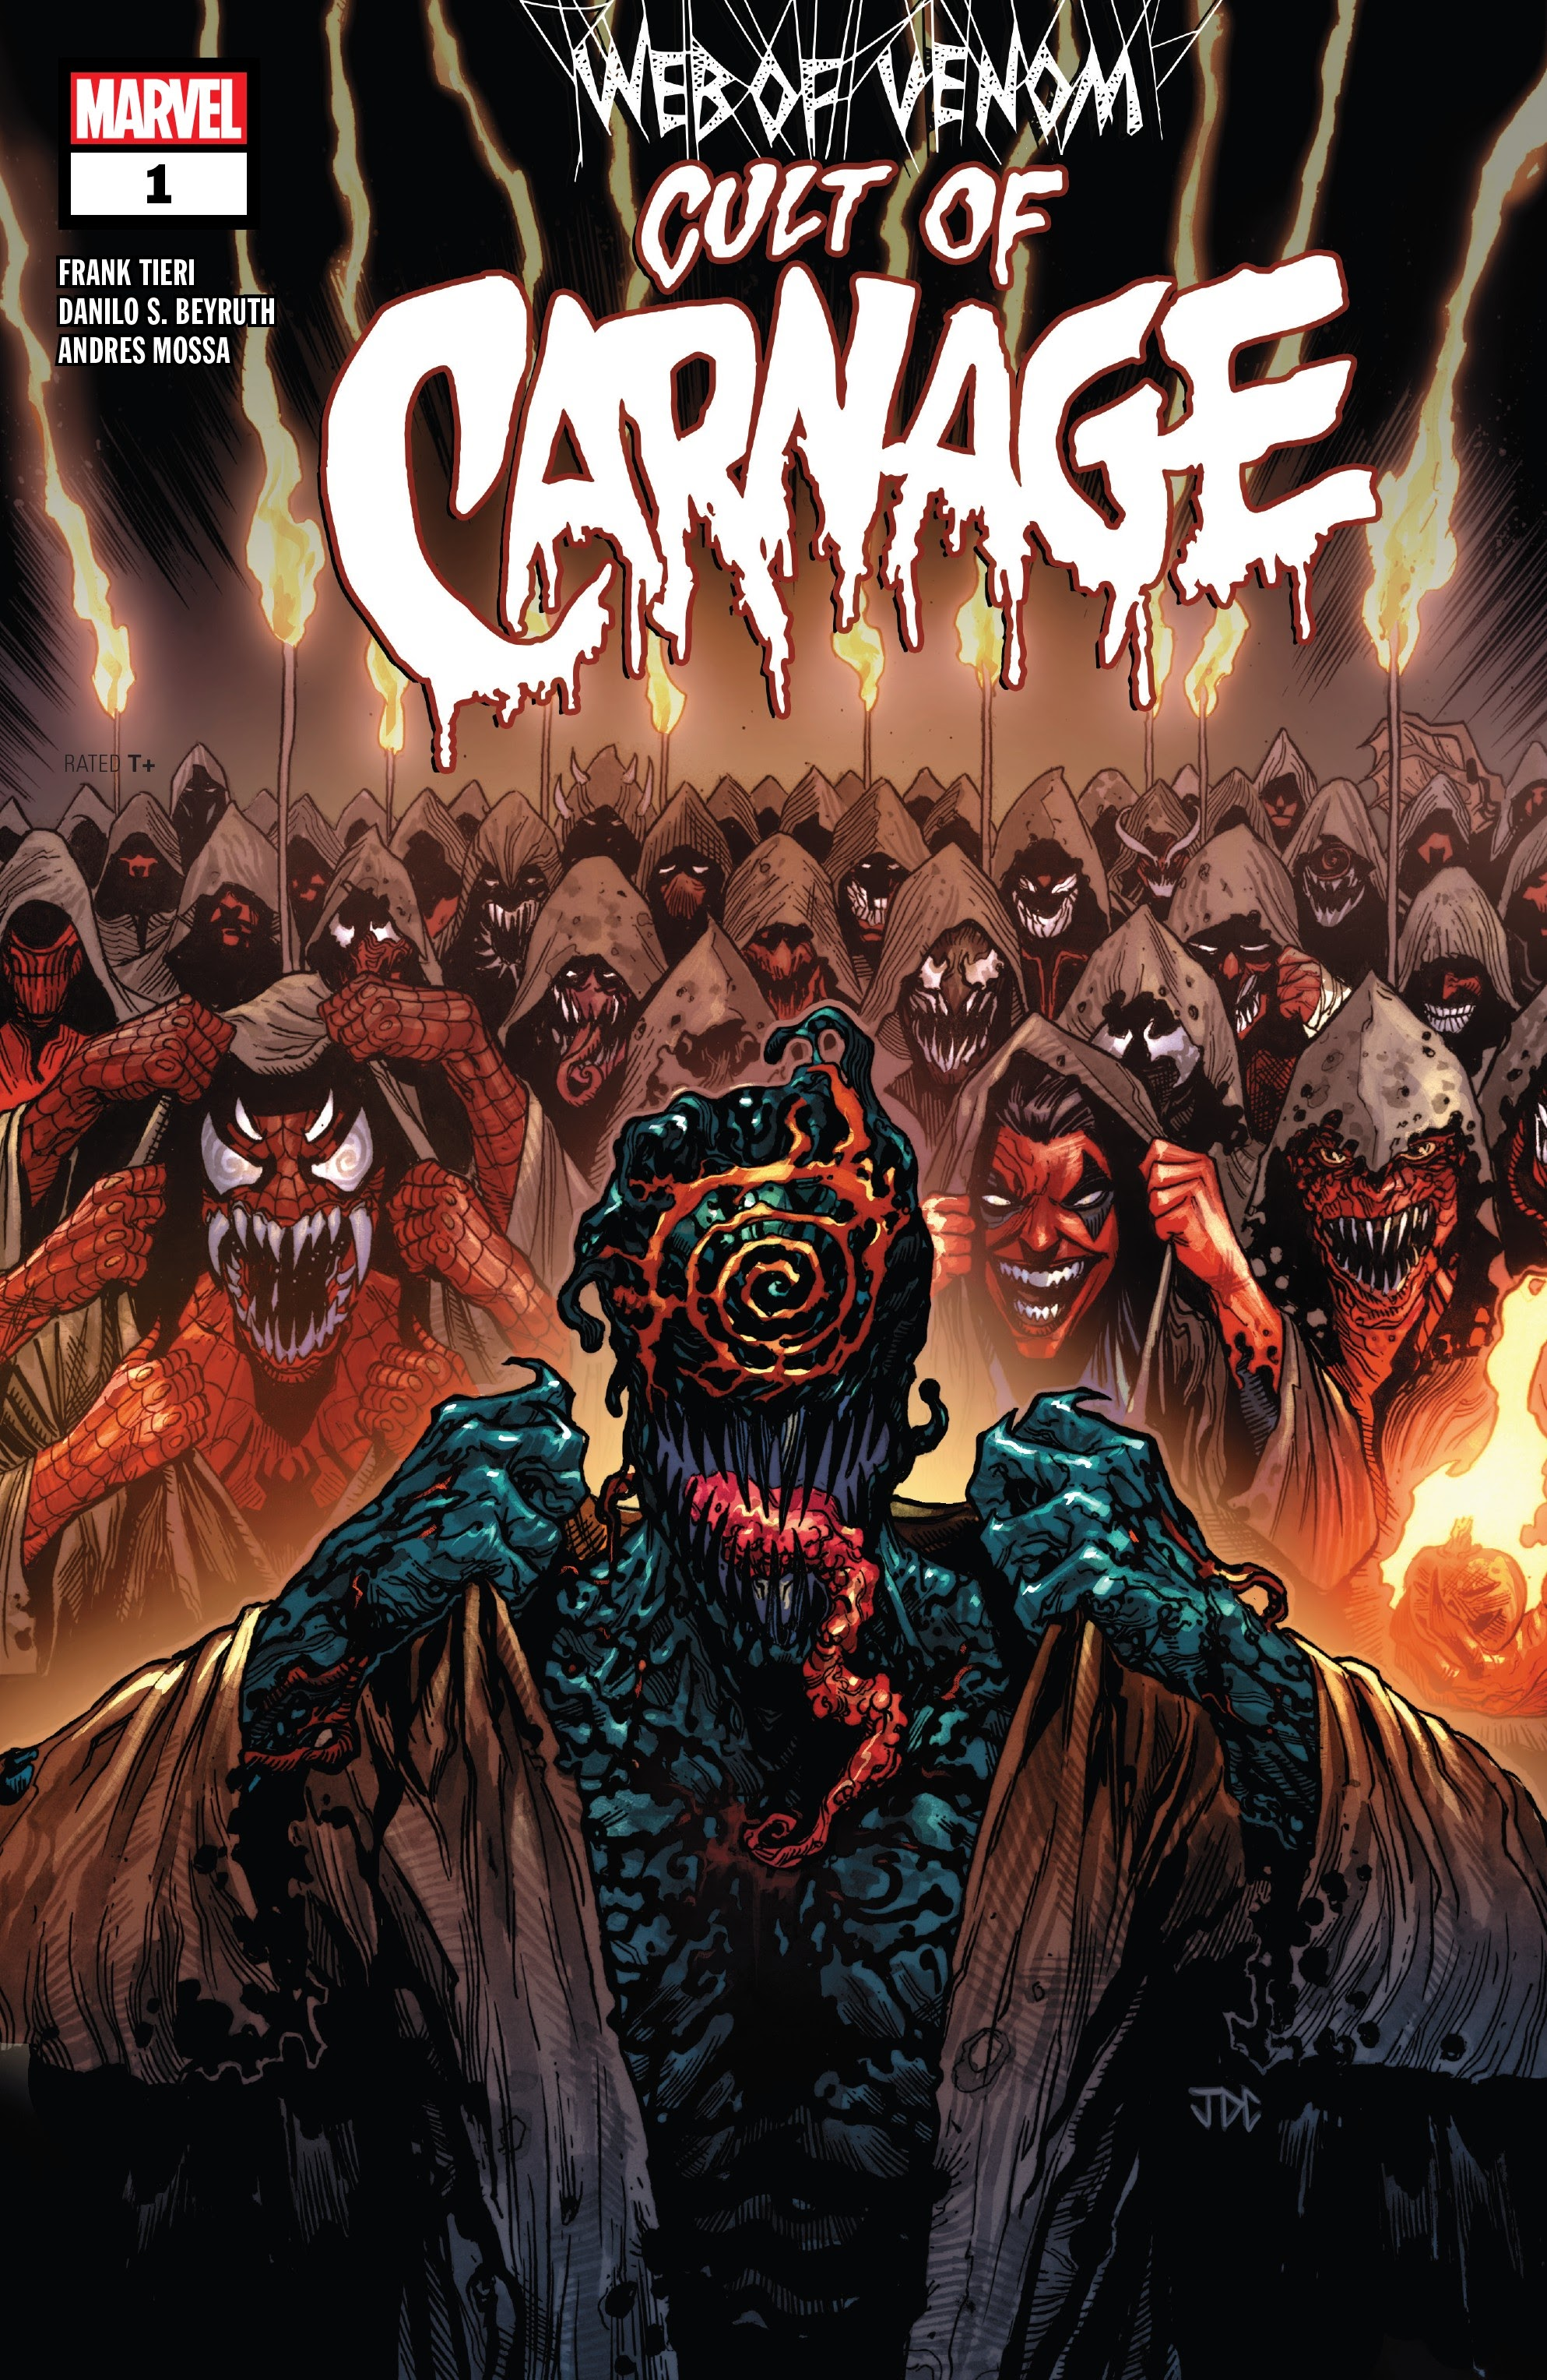 Web of Venom: Cult of Carnage Full Page 1